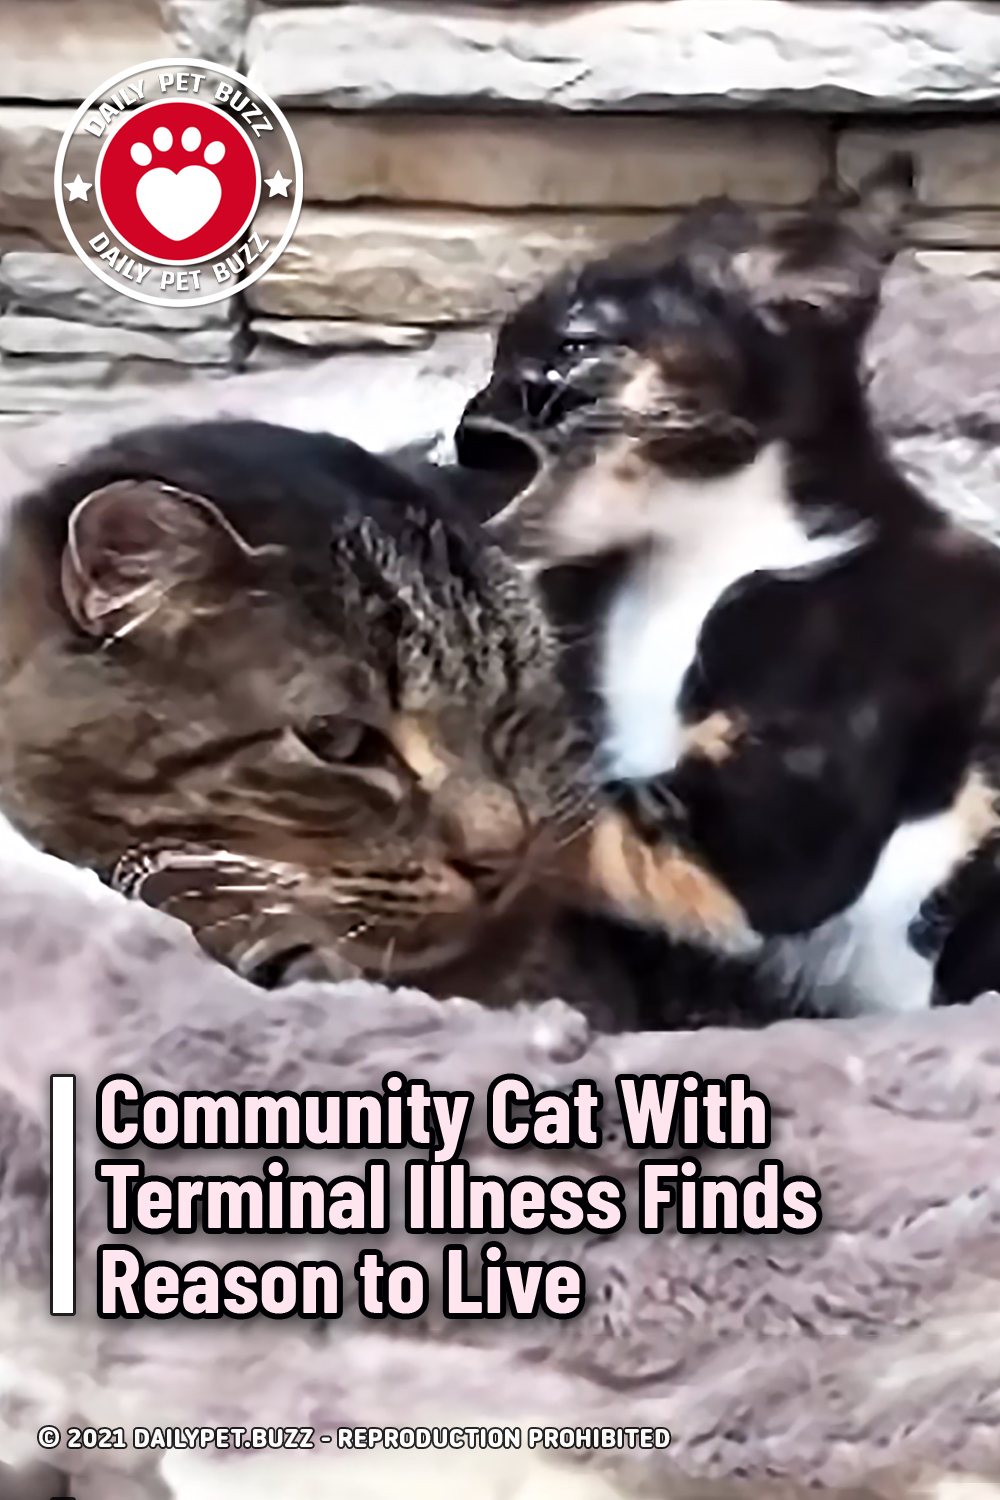 Community Cat With Terminal Illness Finds Reason to Live